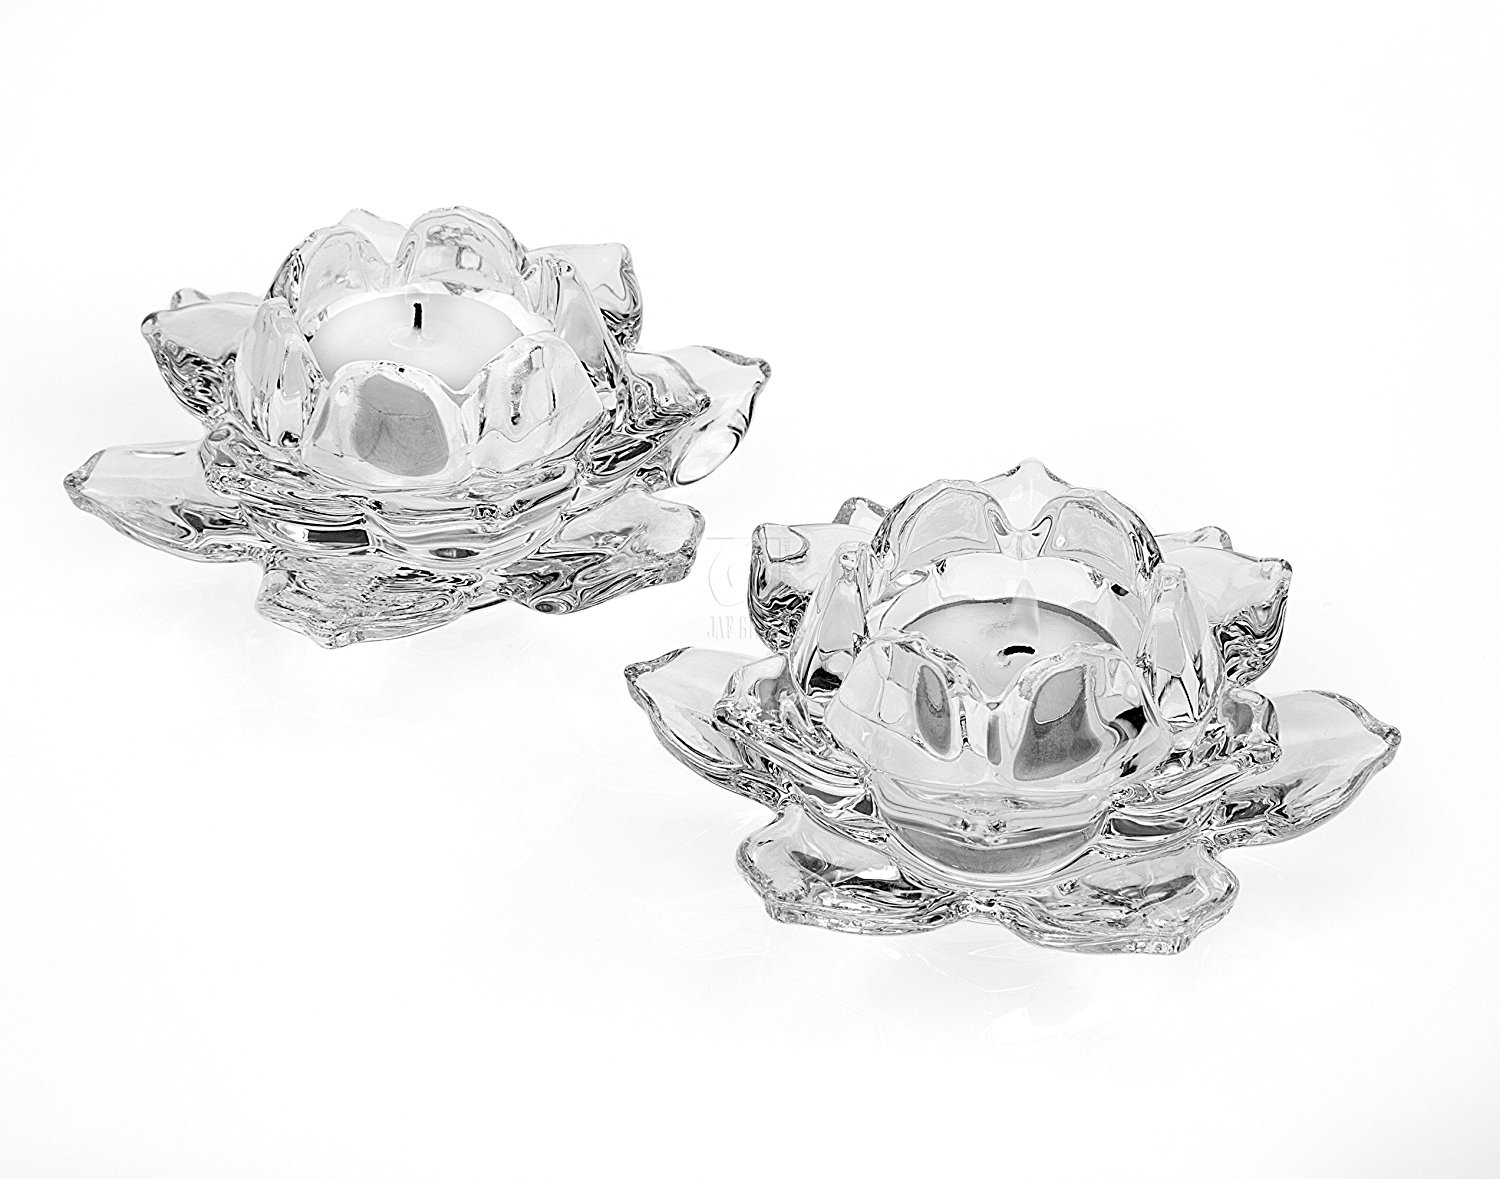 Beautiful Feng Shui Candle Holders - Click Here To Preview